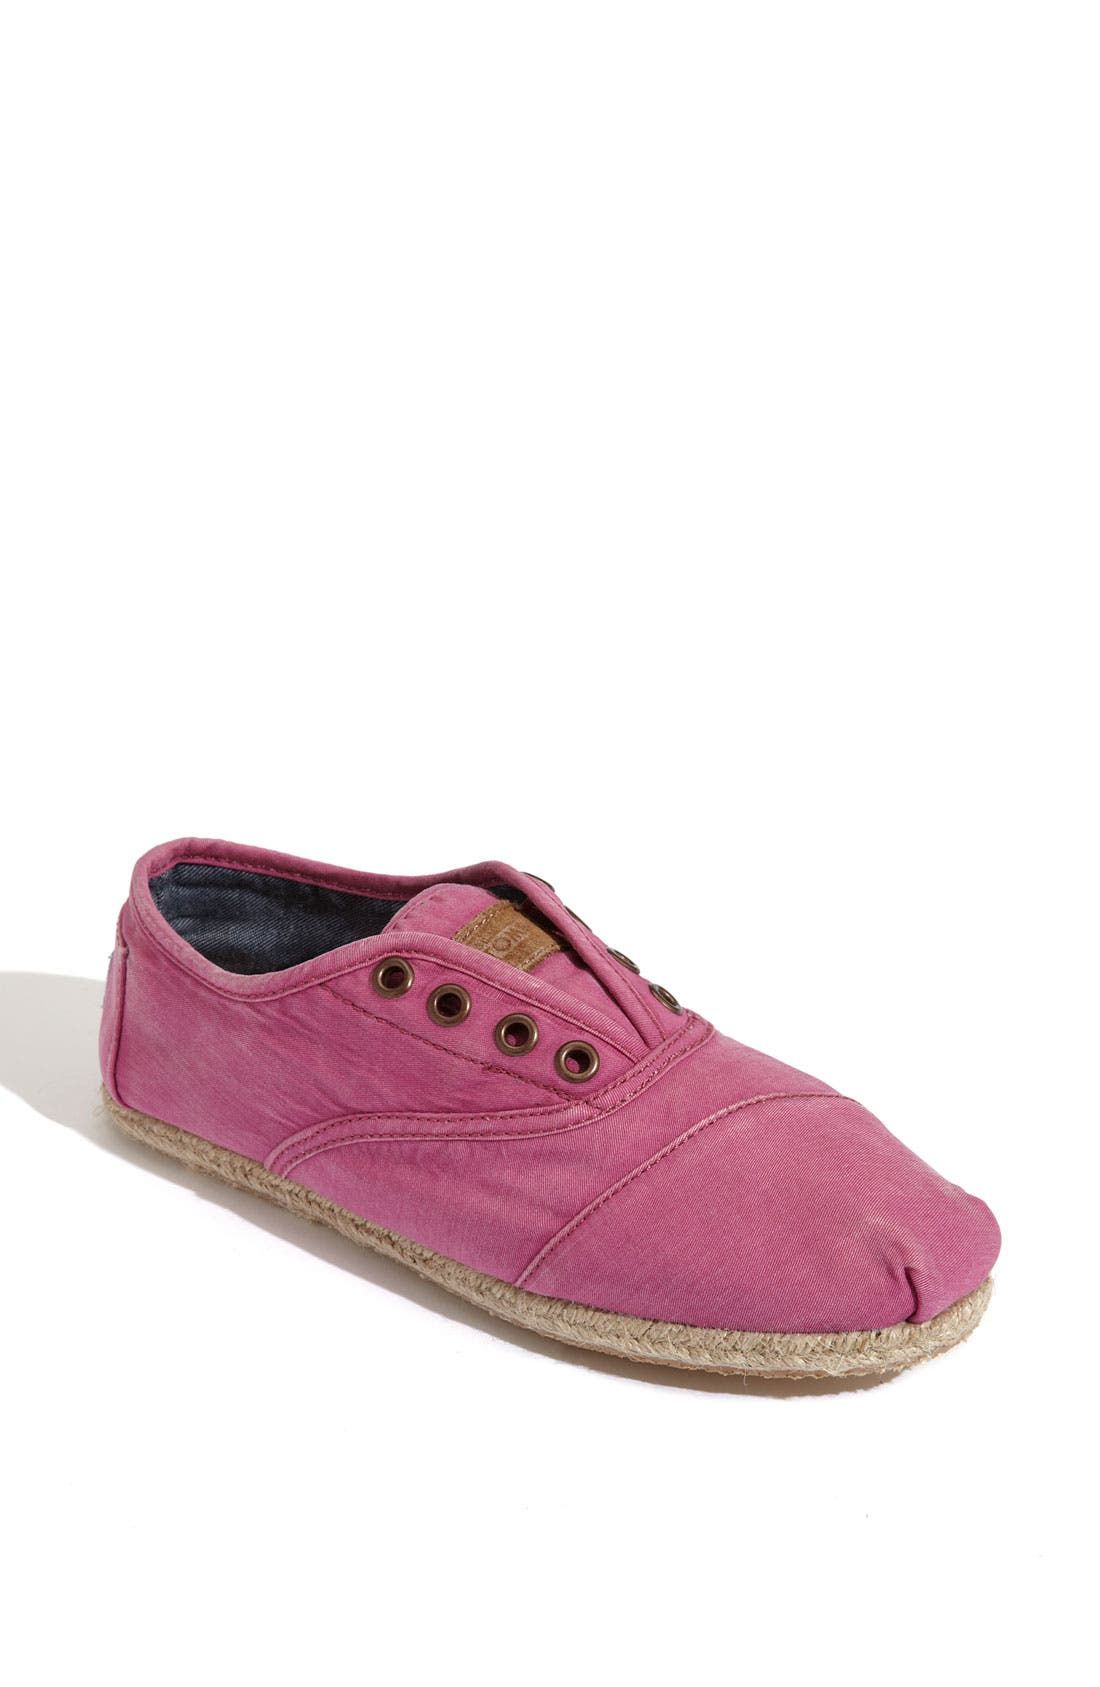 Alternate Image 1 Selected - TOMS 'Cordones - Ceara' Slip-On (Women)